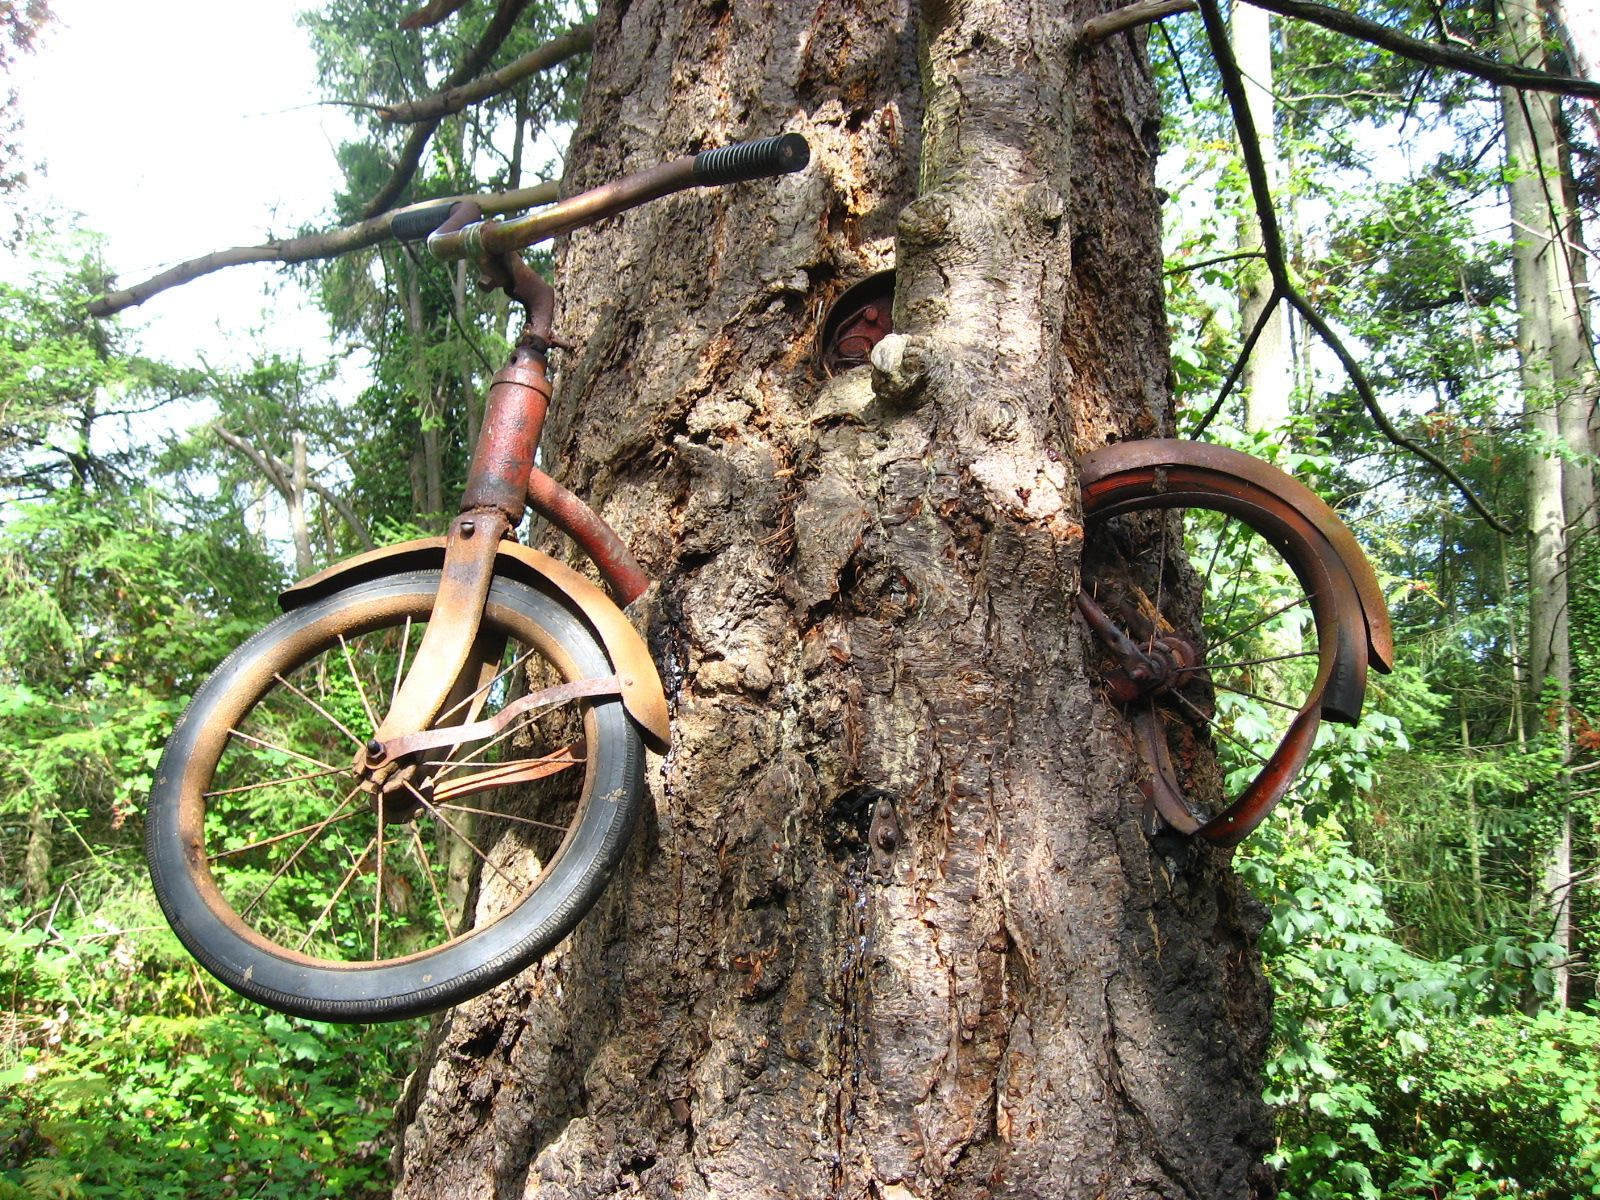 Bicycle in a Tree